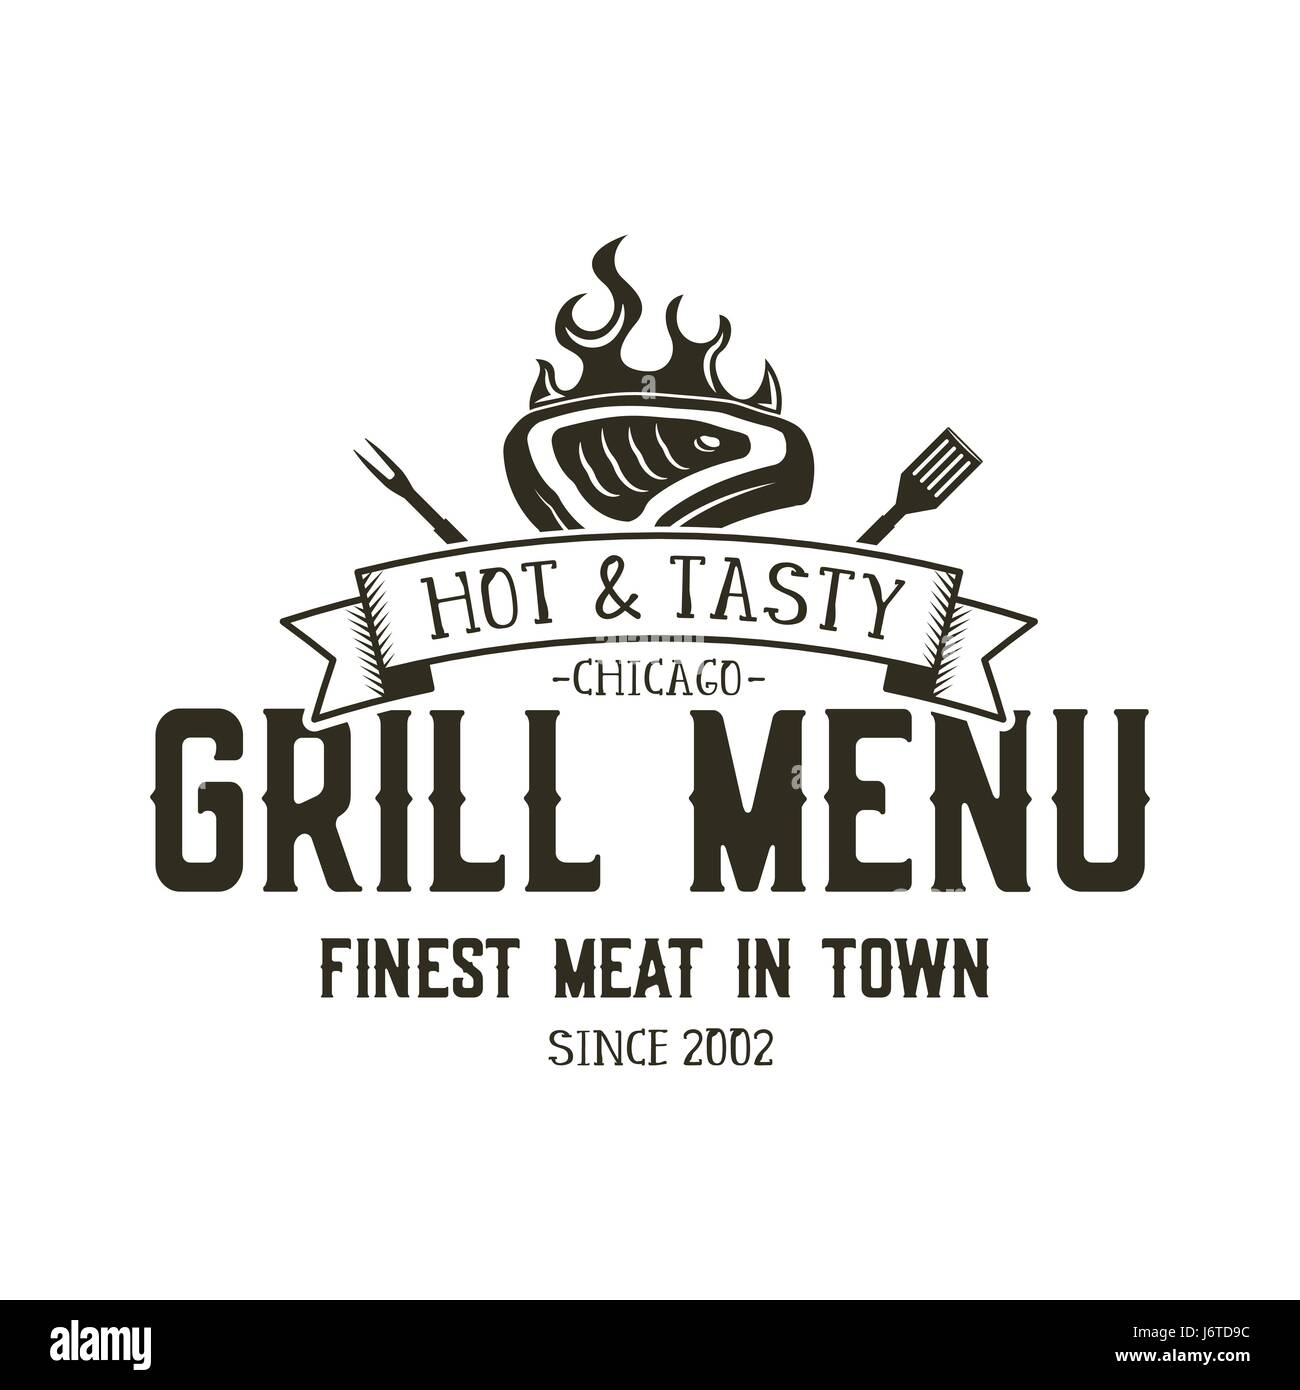 Grill menu emblem template steak house restaurant logo design steak house restaurant logo design with bbq symbols meat fire barbeque tools vintage monochrome style retro logotype isolated on white buycottarizona Image collections